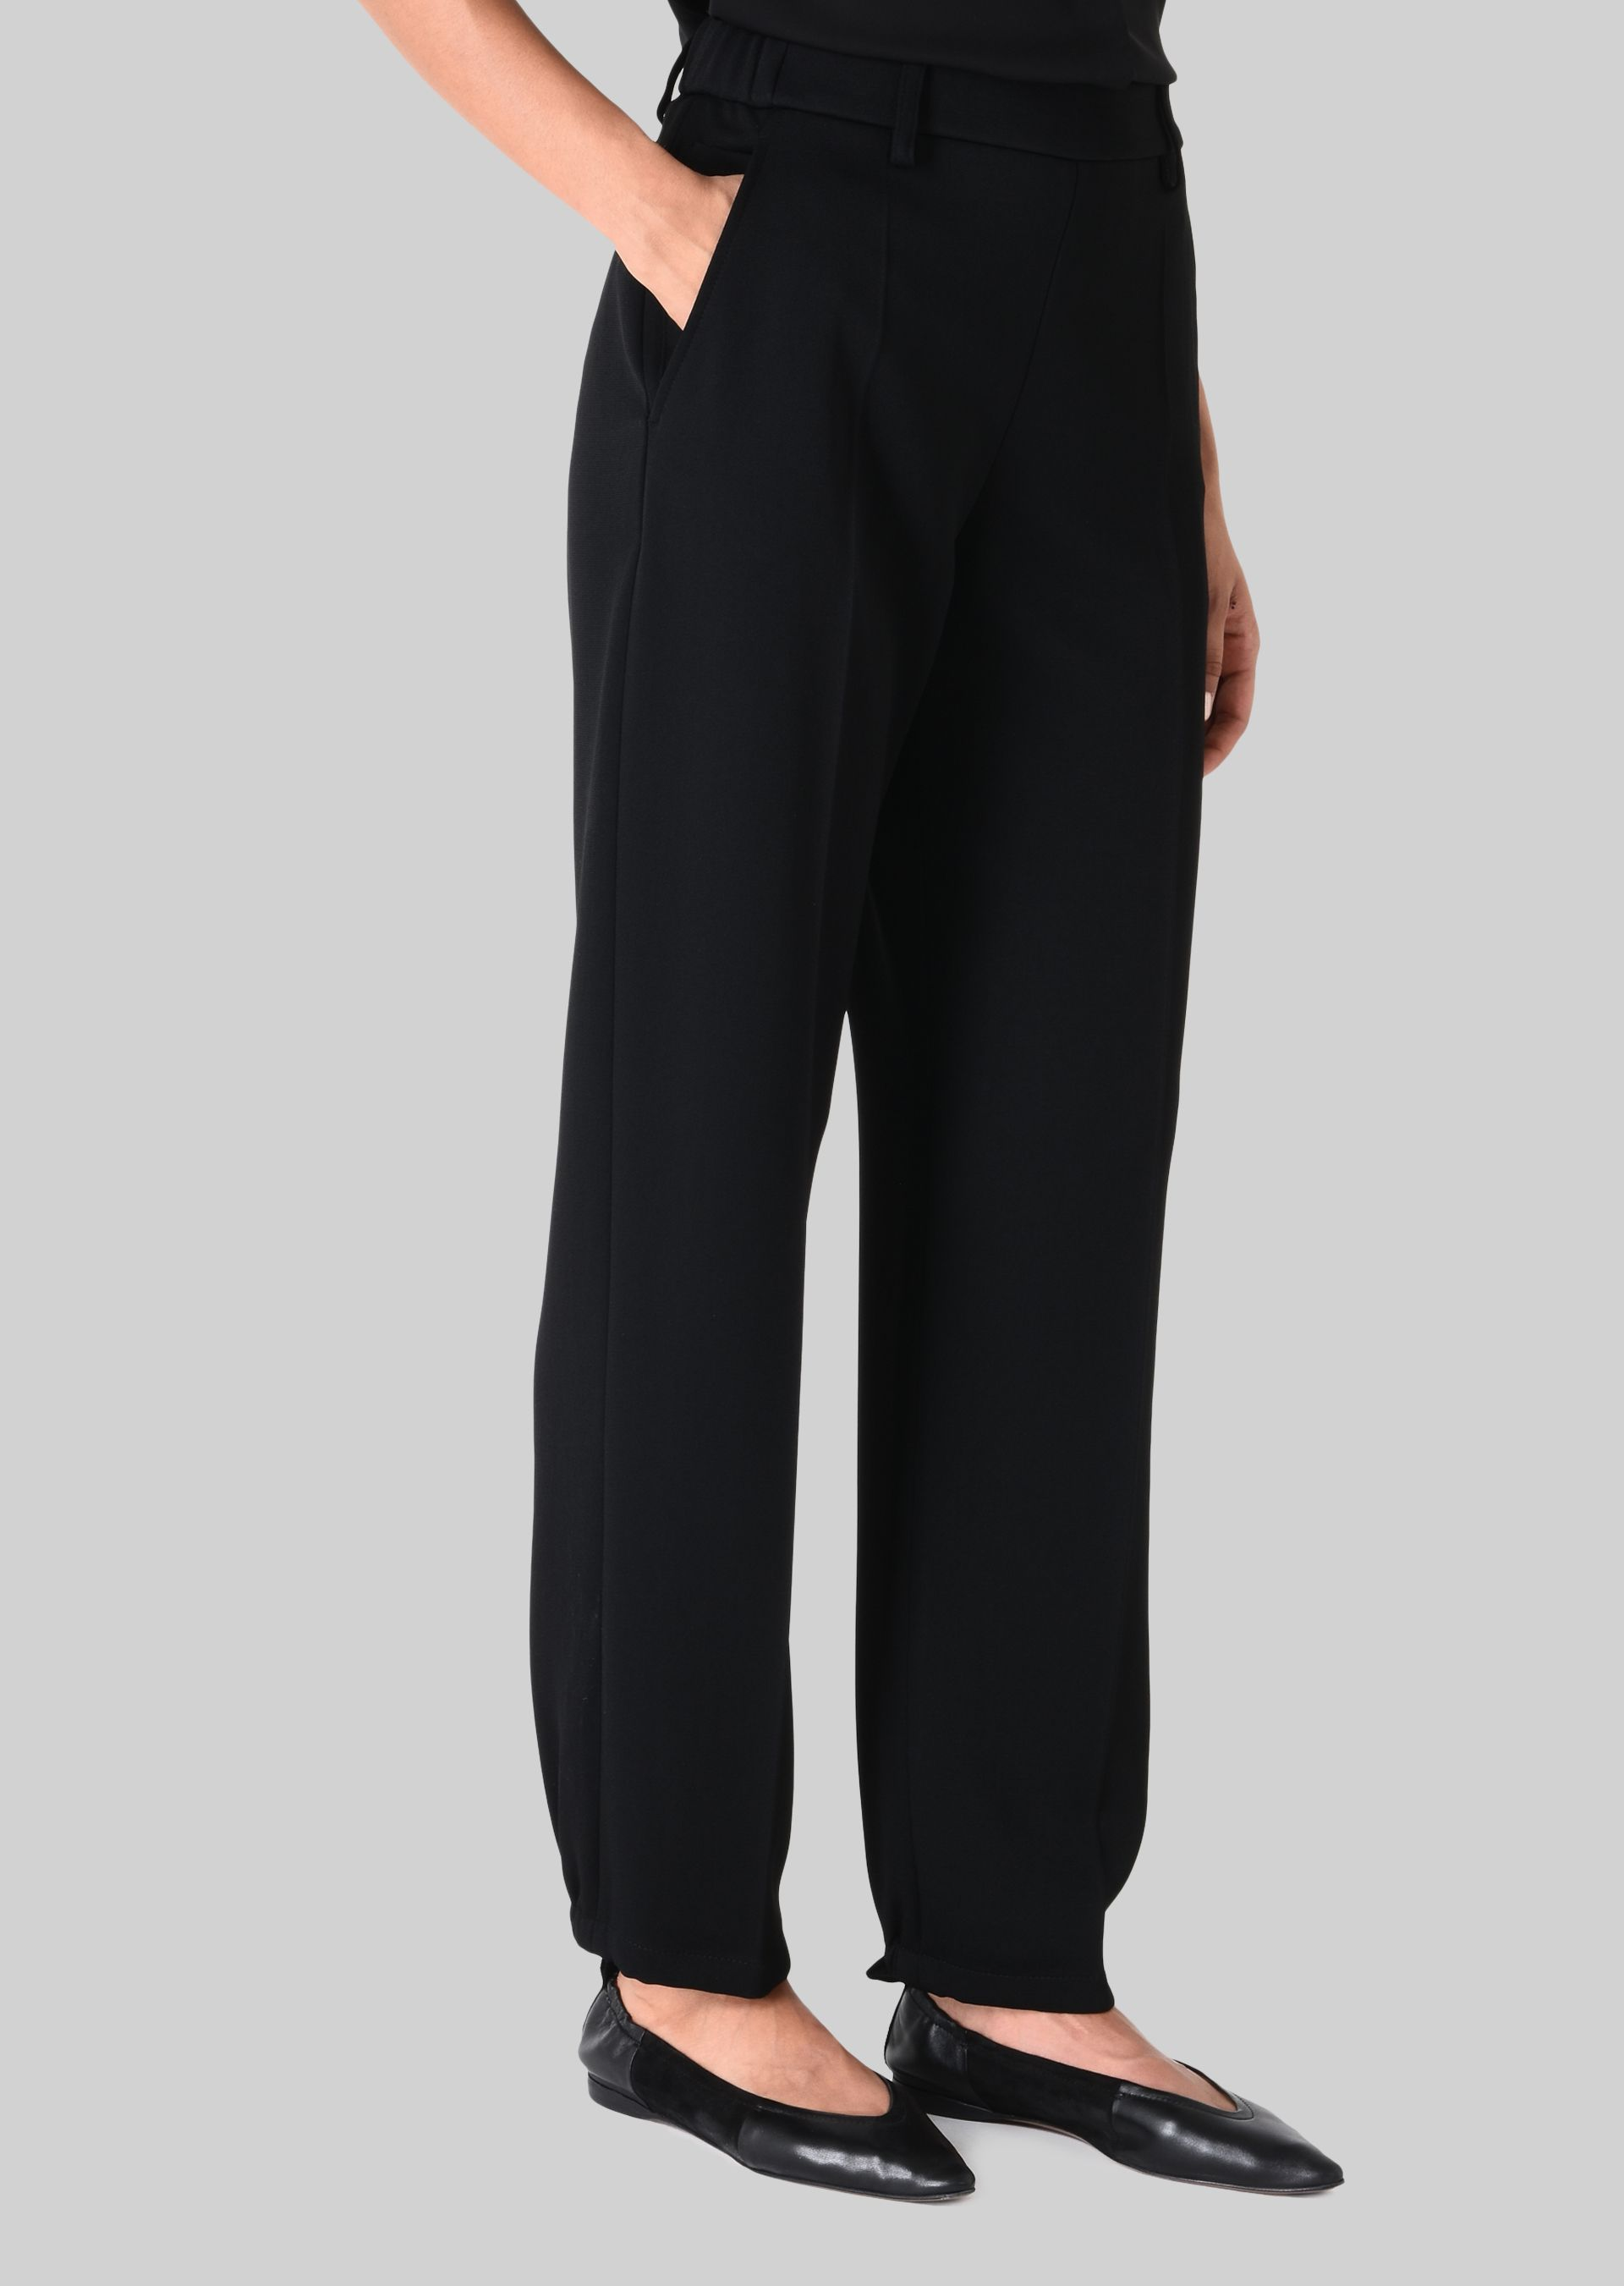 GIORGIO ARMANI CLASSIC TROUSERS IN TECHNICAL FABRIC Pants D d